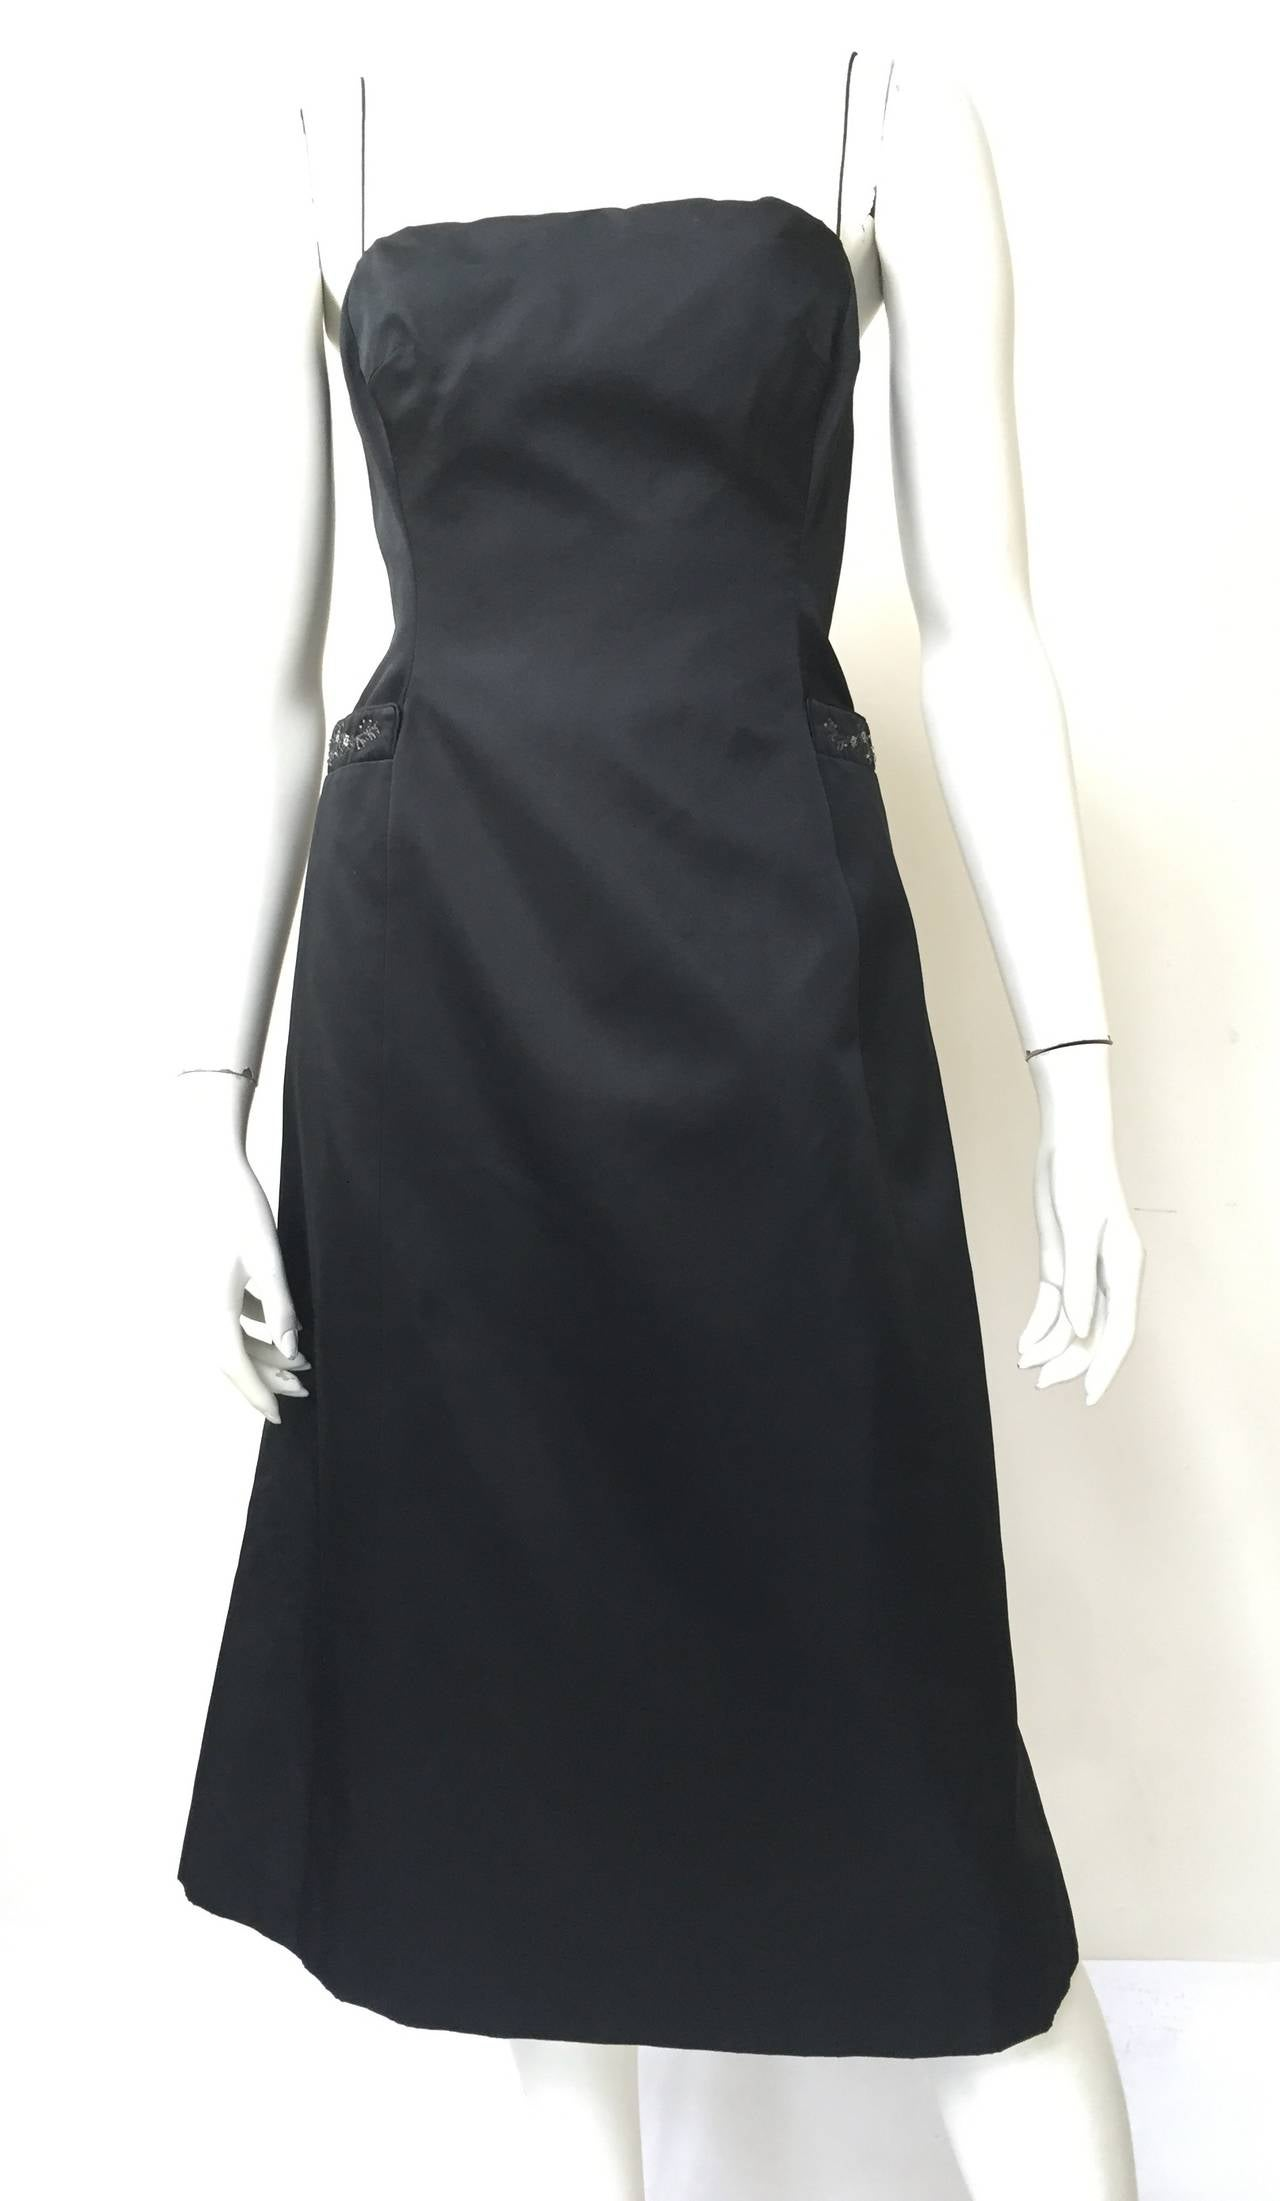 Richard Tyler Couture 90s black silk spaghetti string dress size 8 made in the USA but fits like a modern USA size 6.  Ladies please use your measuring tape so you can properly measure your bust, waist & hips to make certain this will fit your